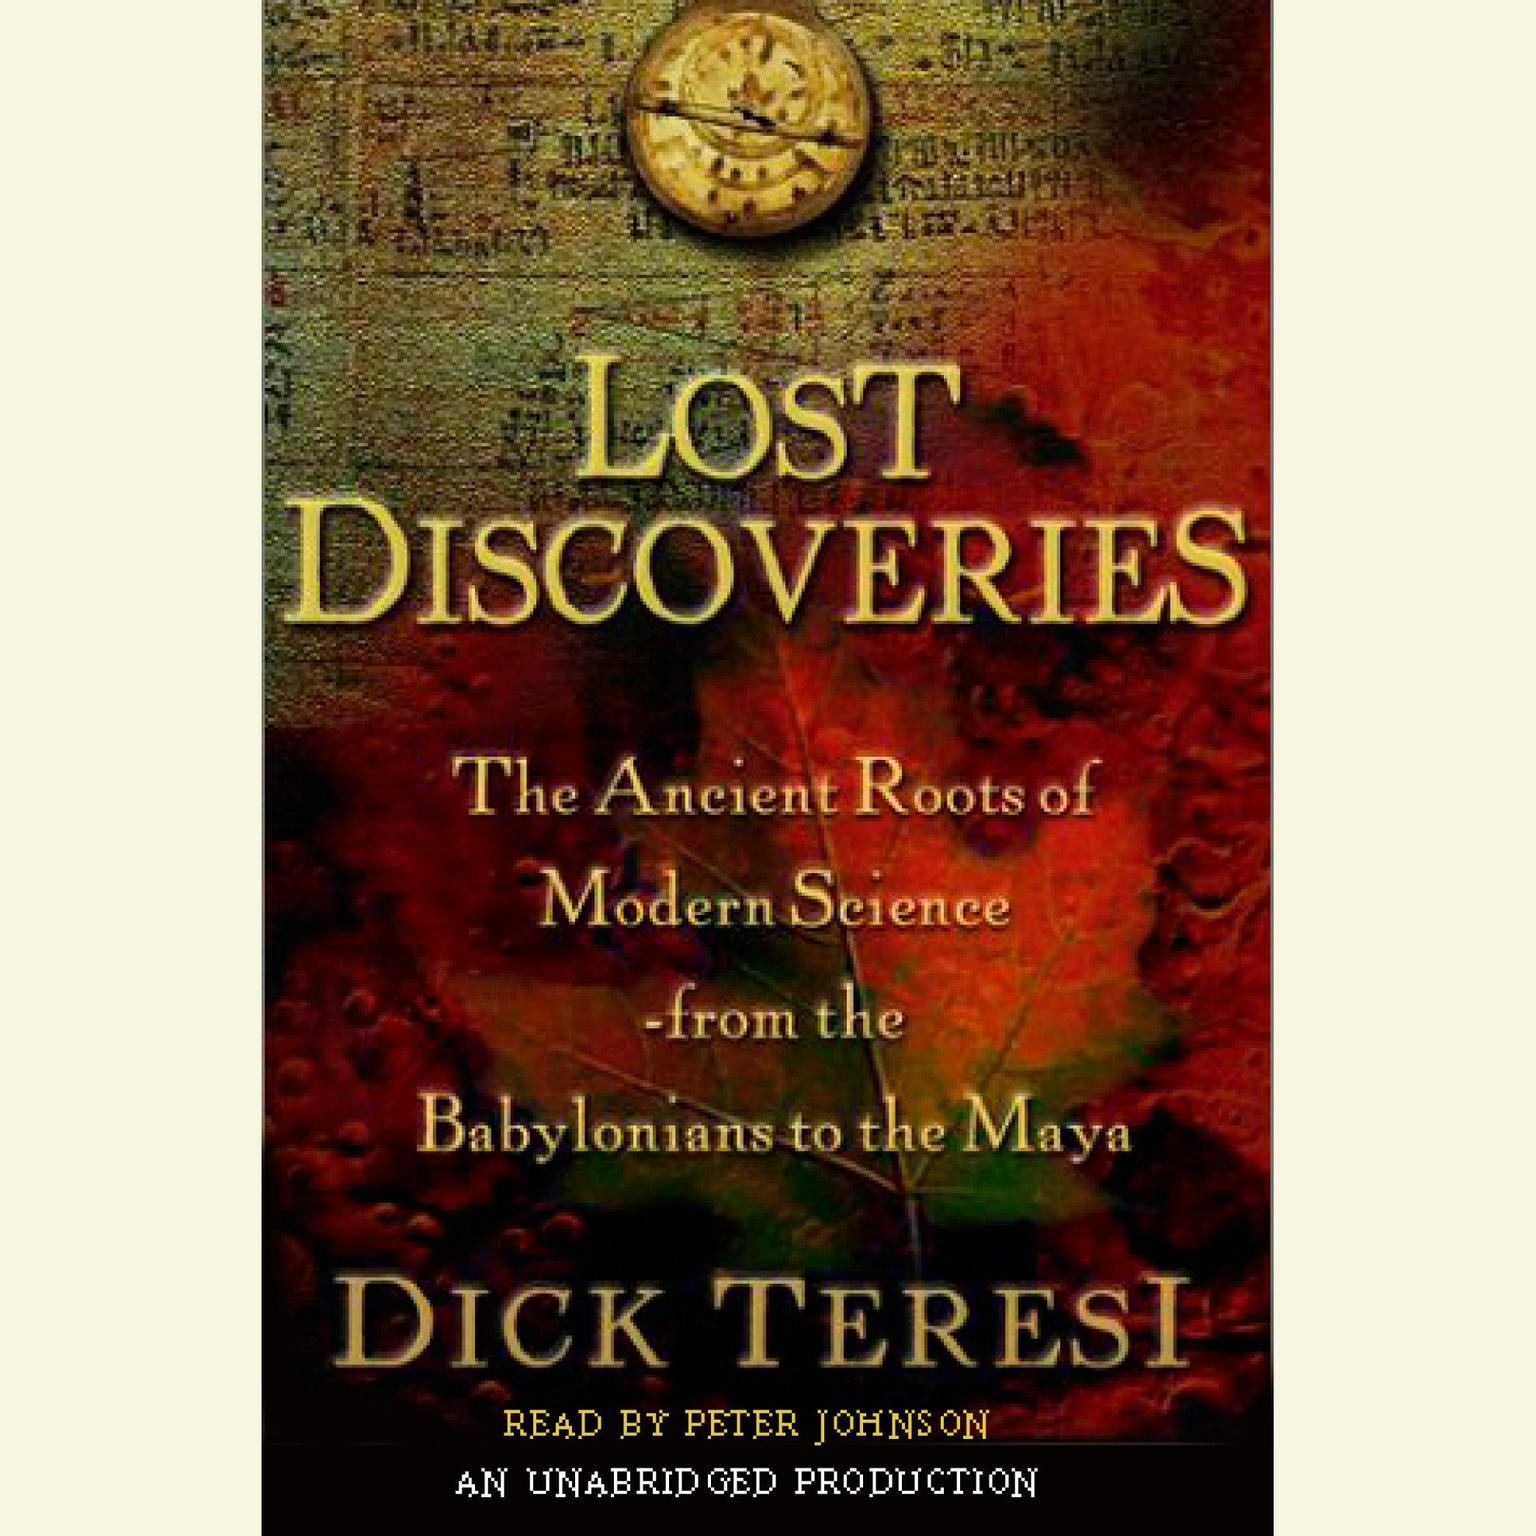 Printable Lost Discoveries: The Ancient Roots of Modern Science from the Babylonians to the Mayans Audiobook Cover Art